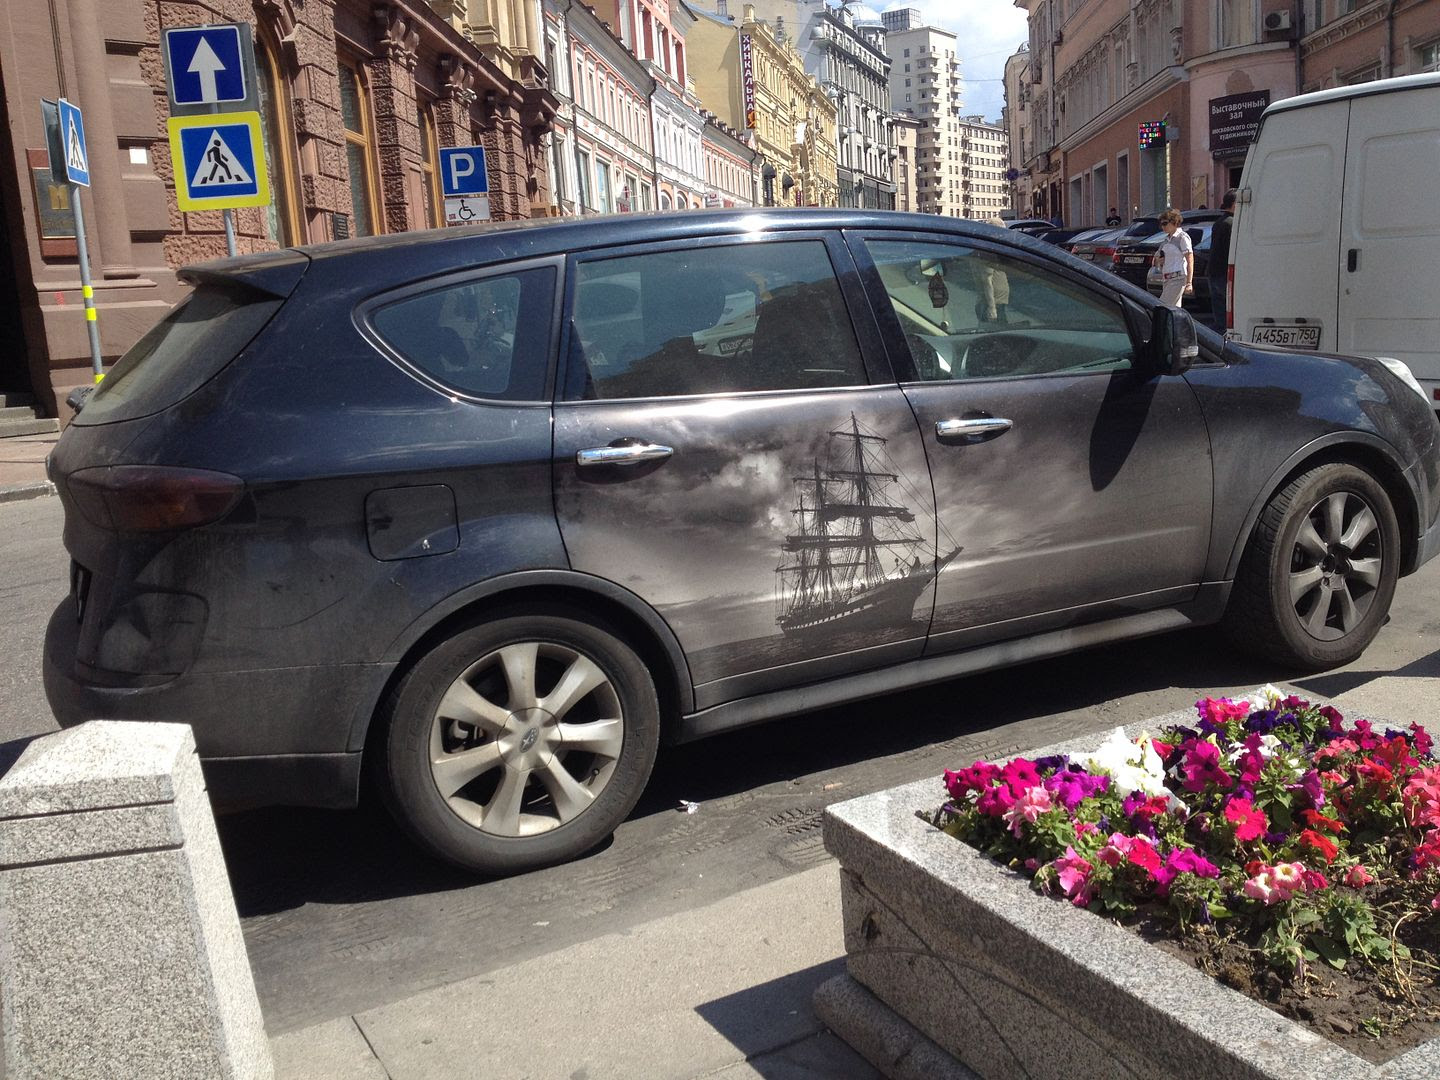 Painting on Car in Moscow photo 2014-07-07142314_zps53a06cd2.jpg